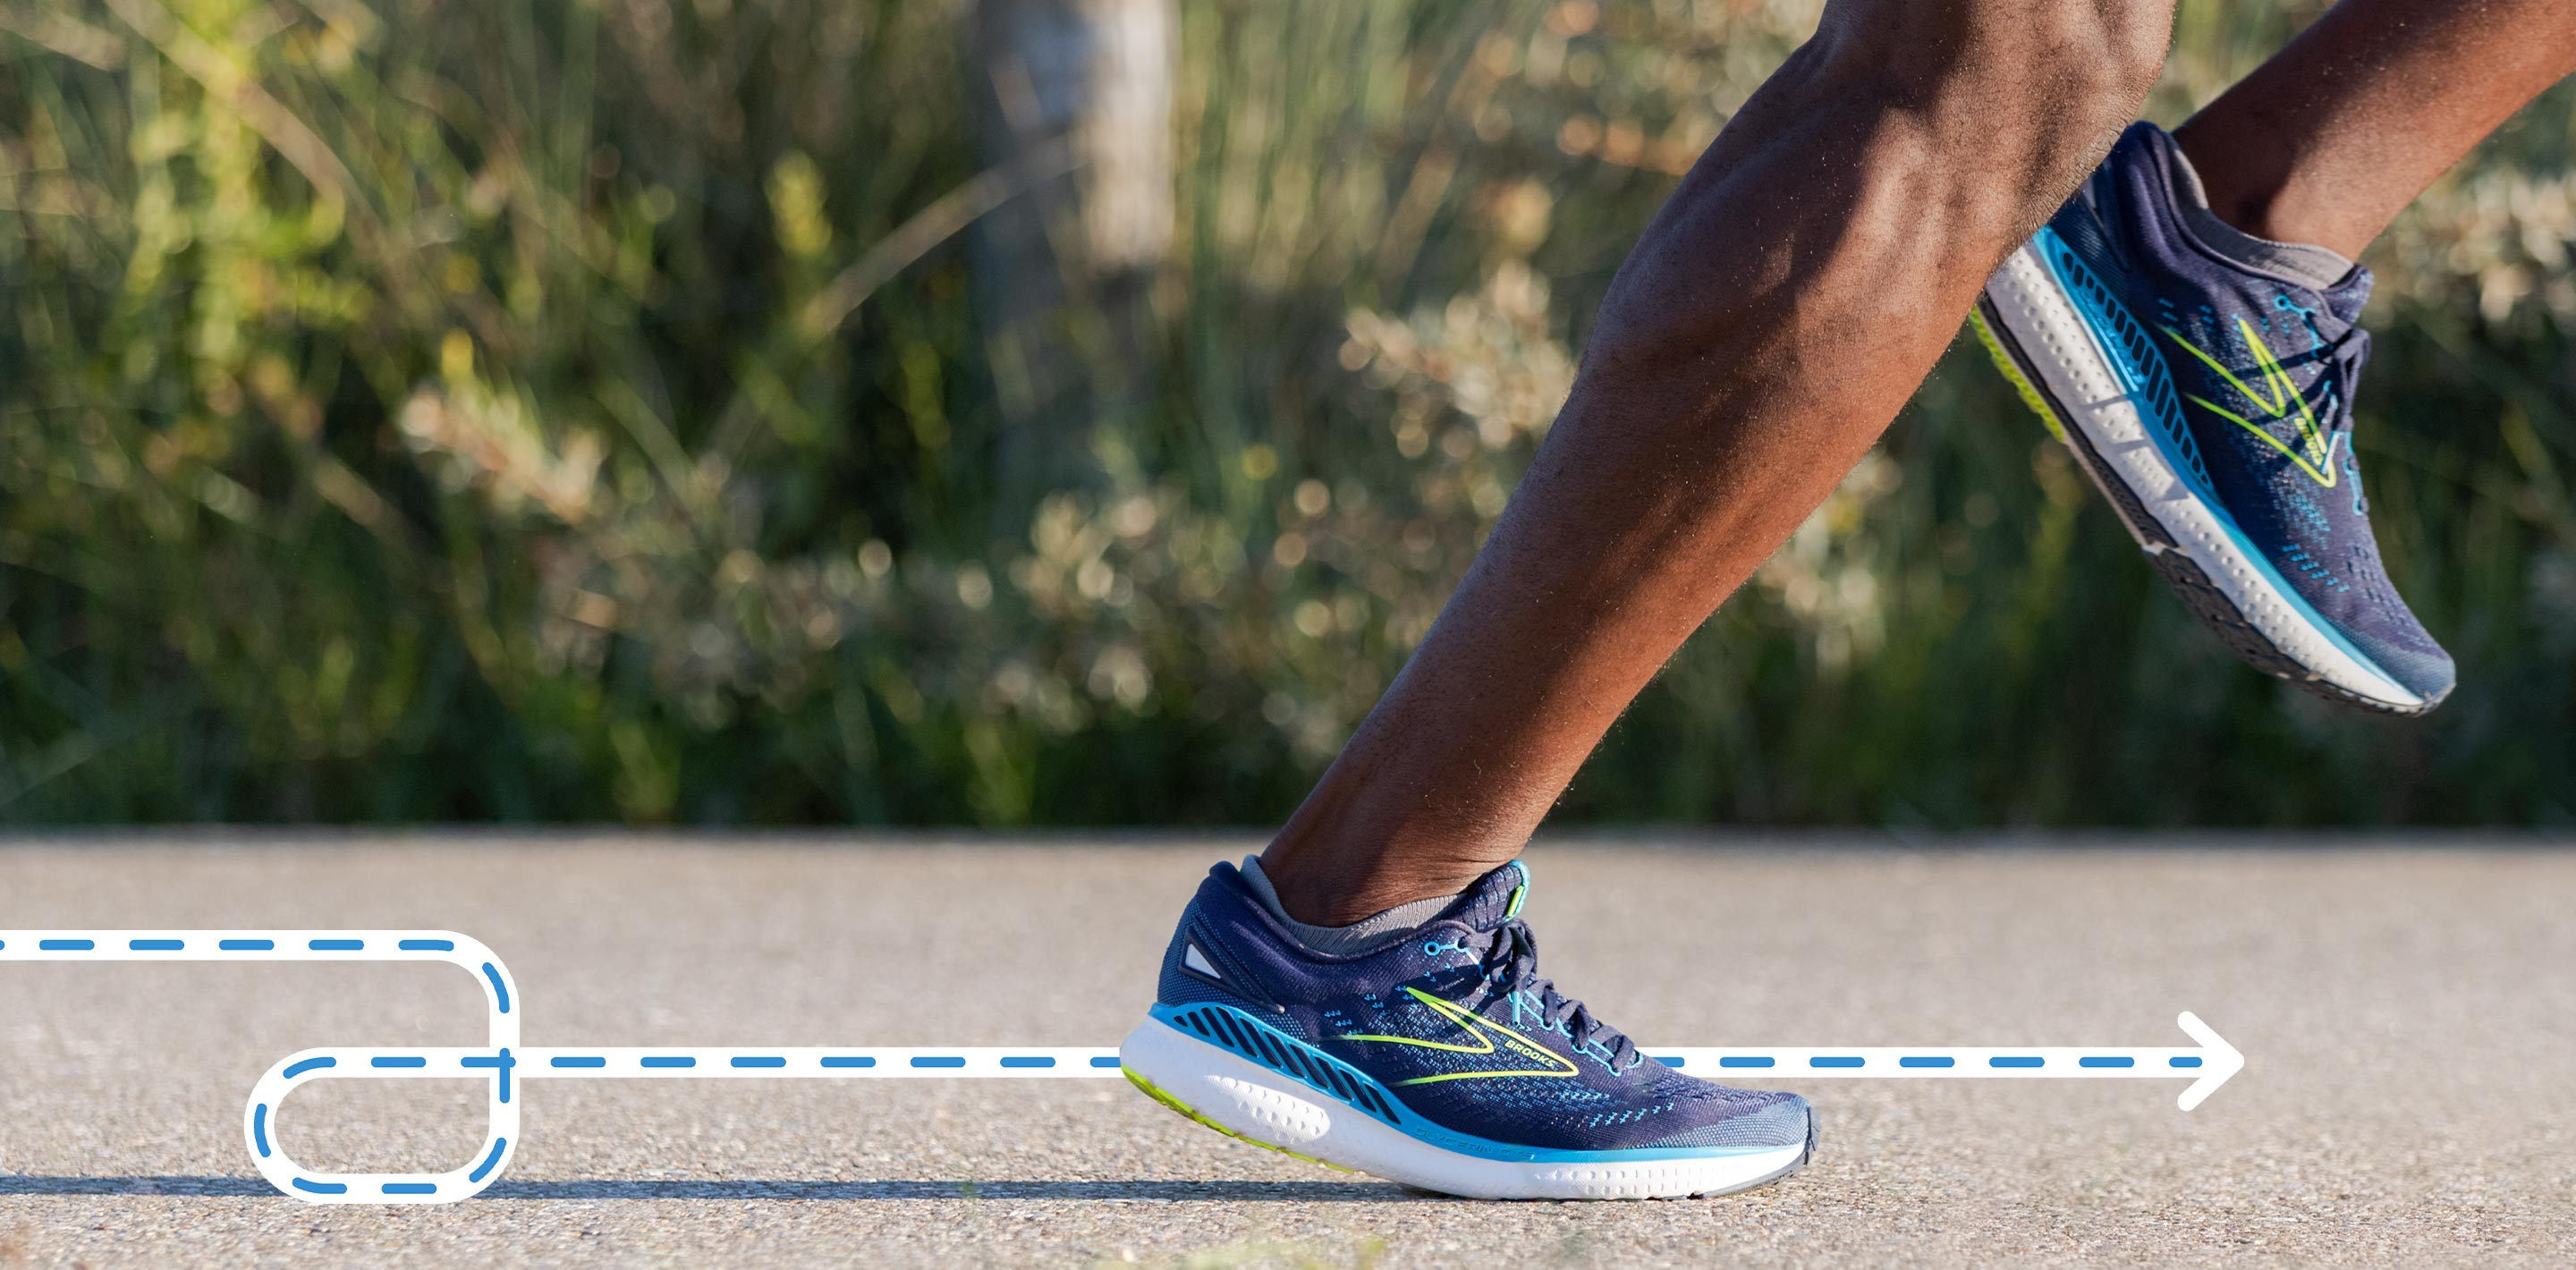 Glycerin GTS 19 on a runners foot mid stride.